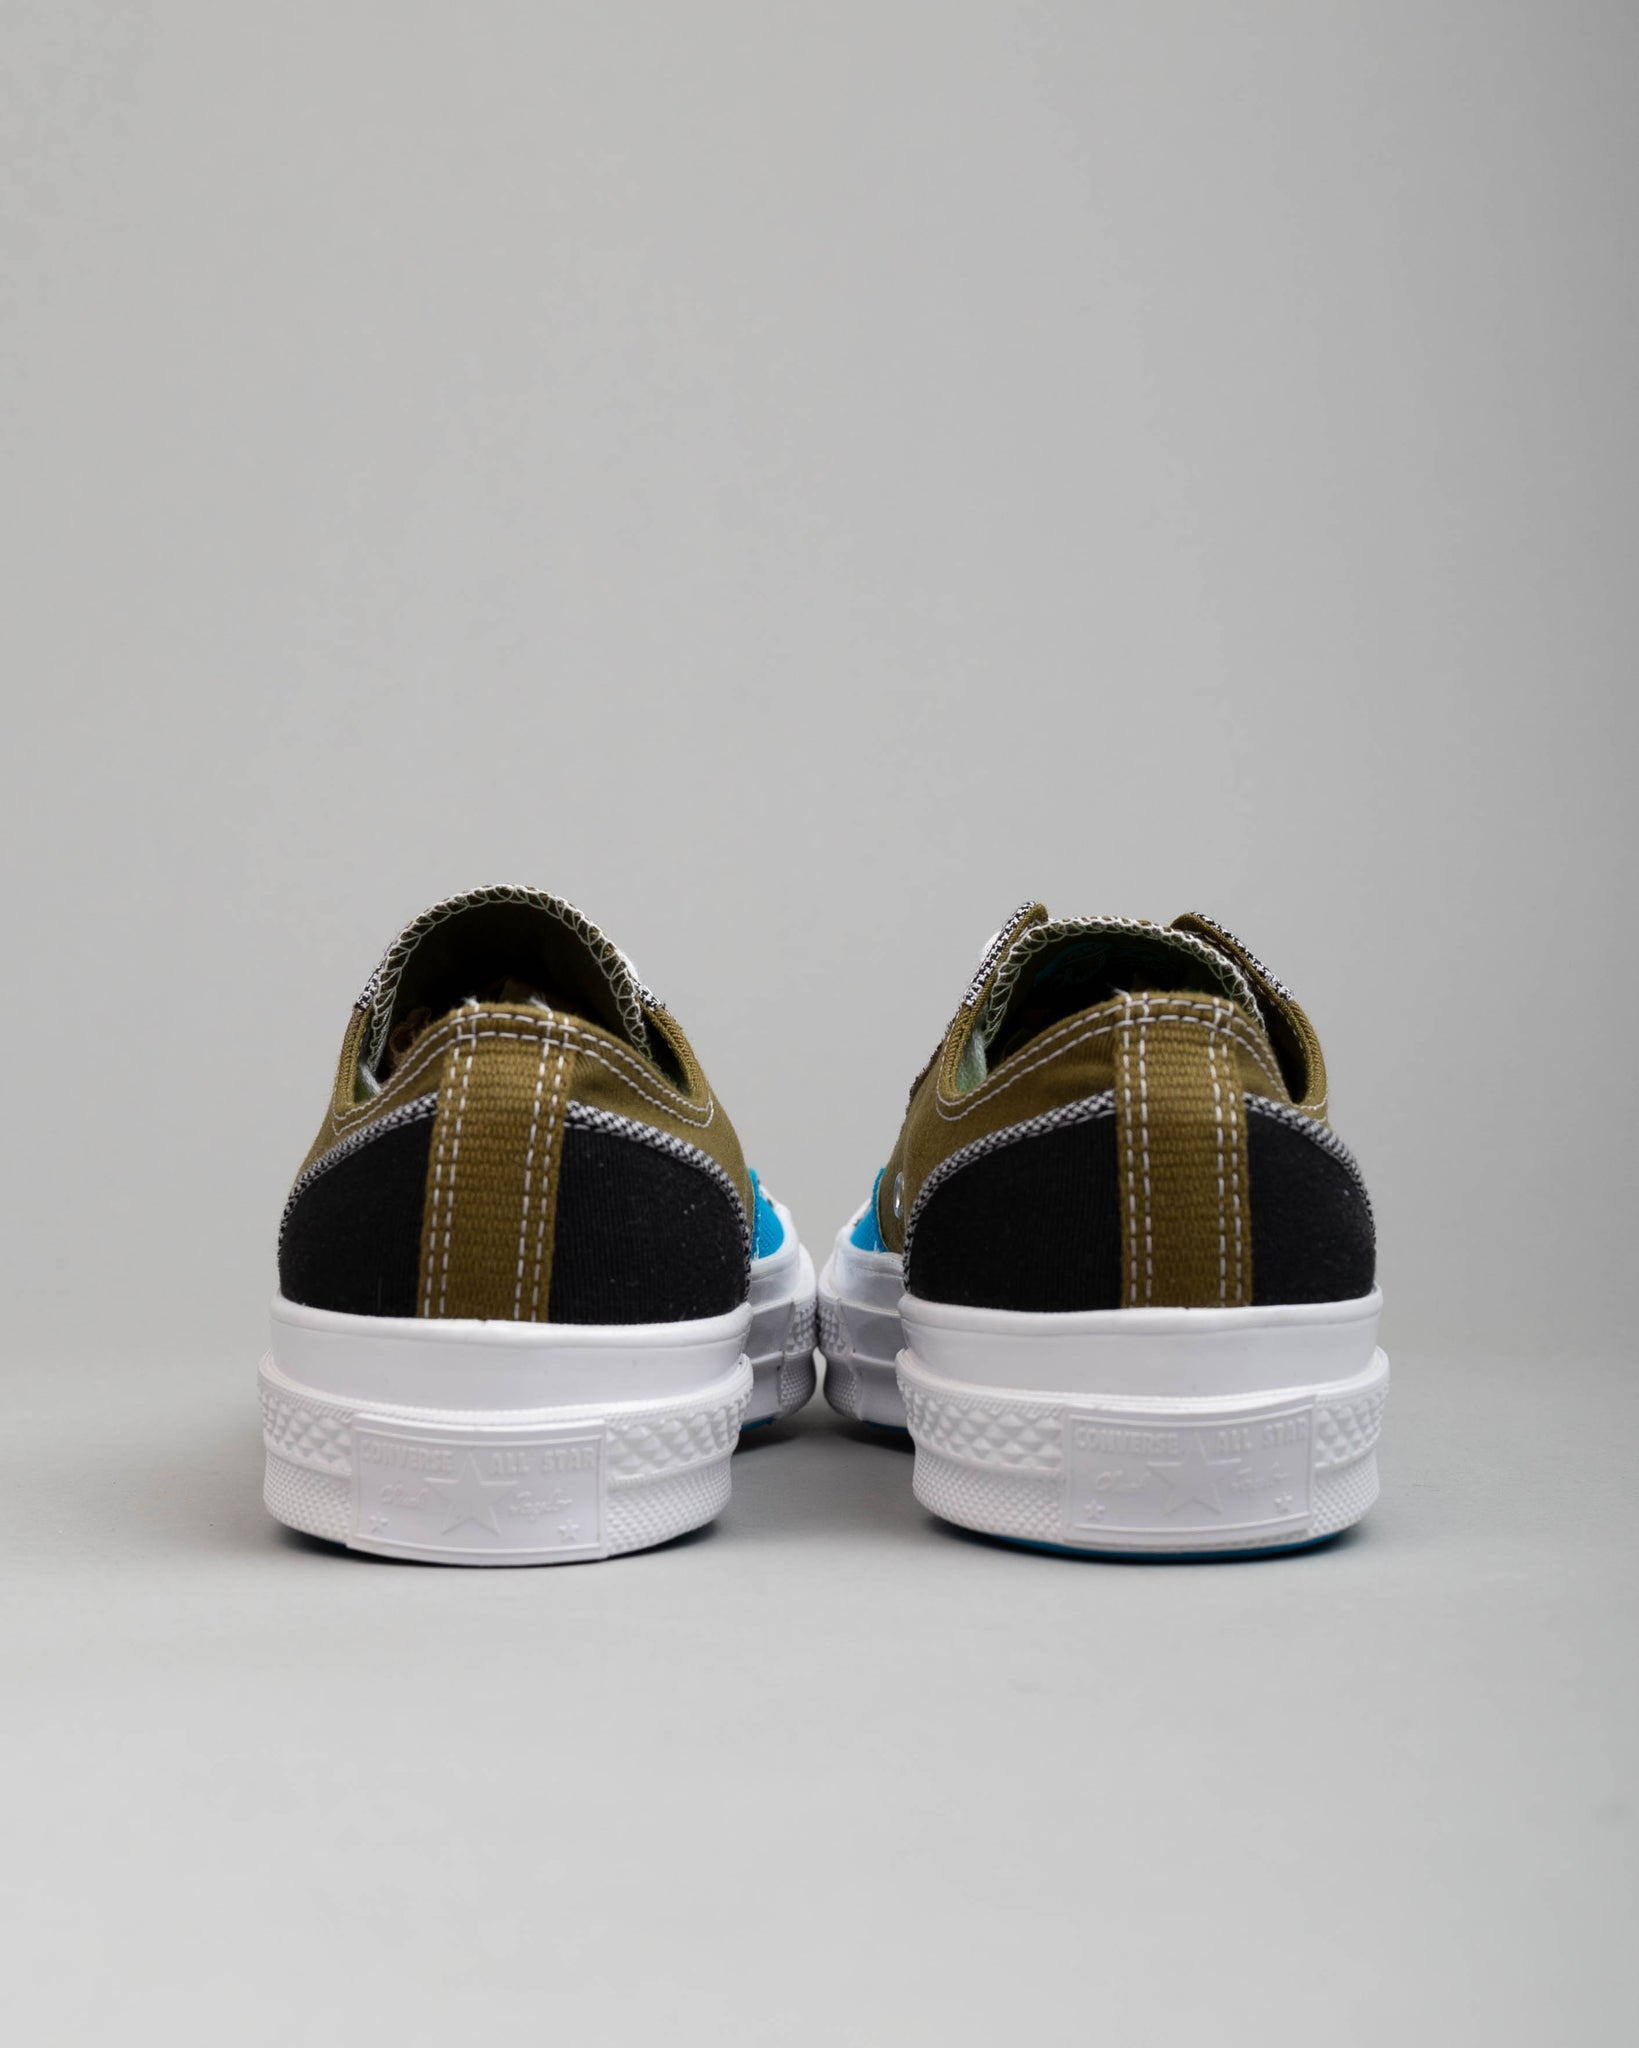 Chuck 70 OX Patchwork Dark Moss/Black